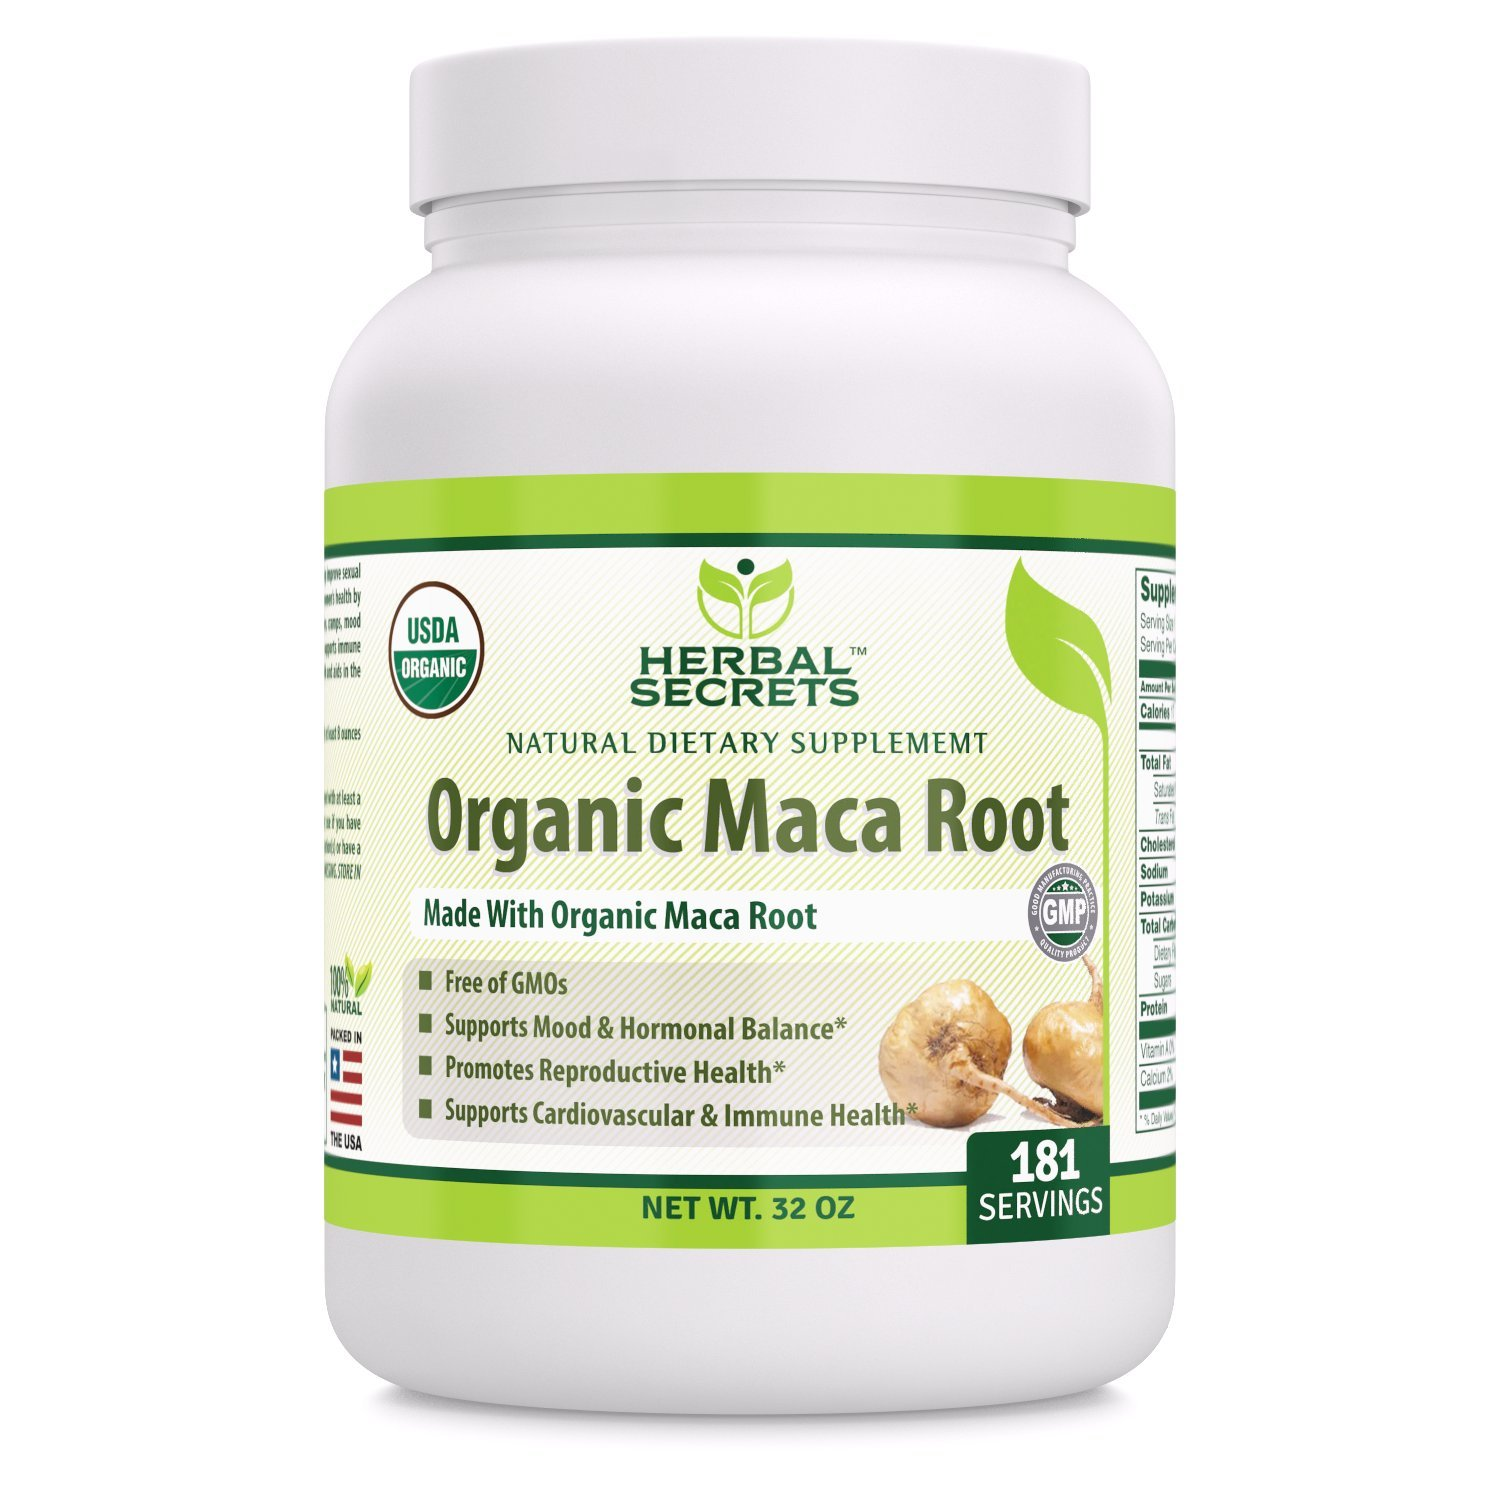 Herbal Secrets USDA Certified Organic Maca Root Powder- 32 oz- GMO Free- Supports Healthy Mood, Hormonal Balance, Cardiovascular Health Immune Health